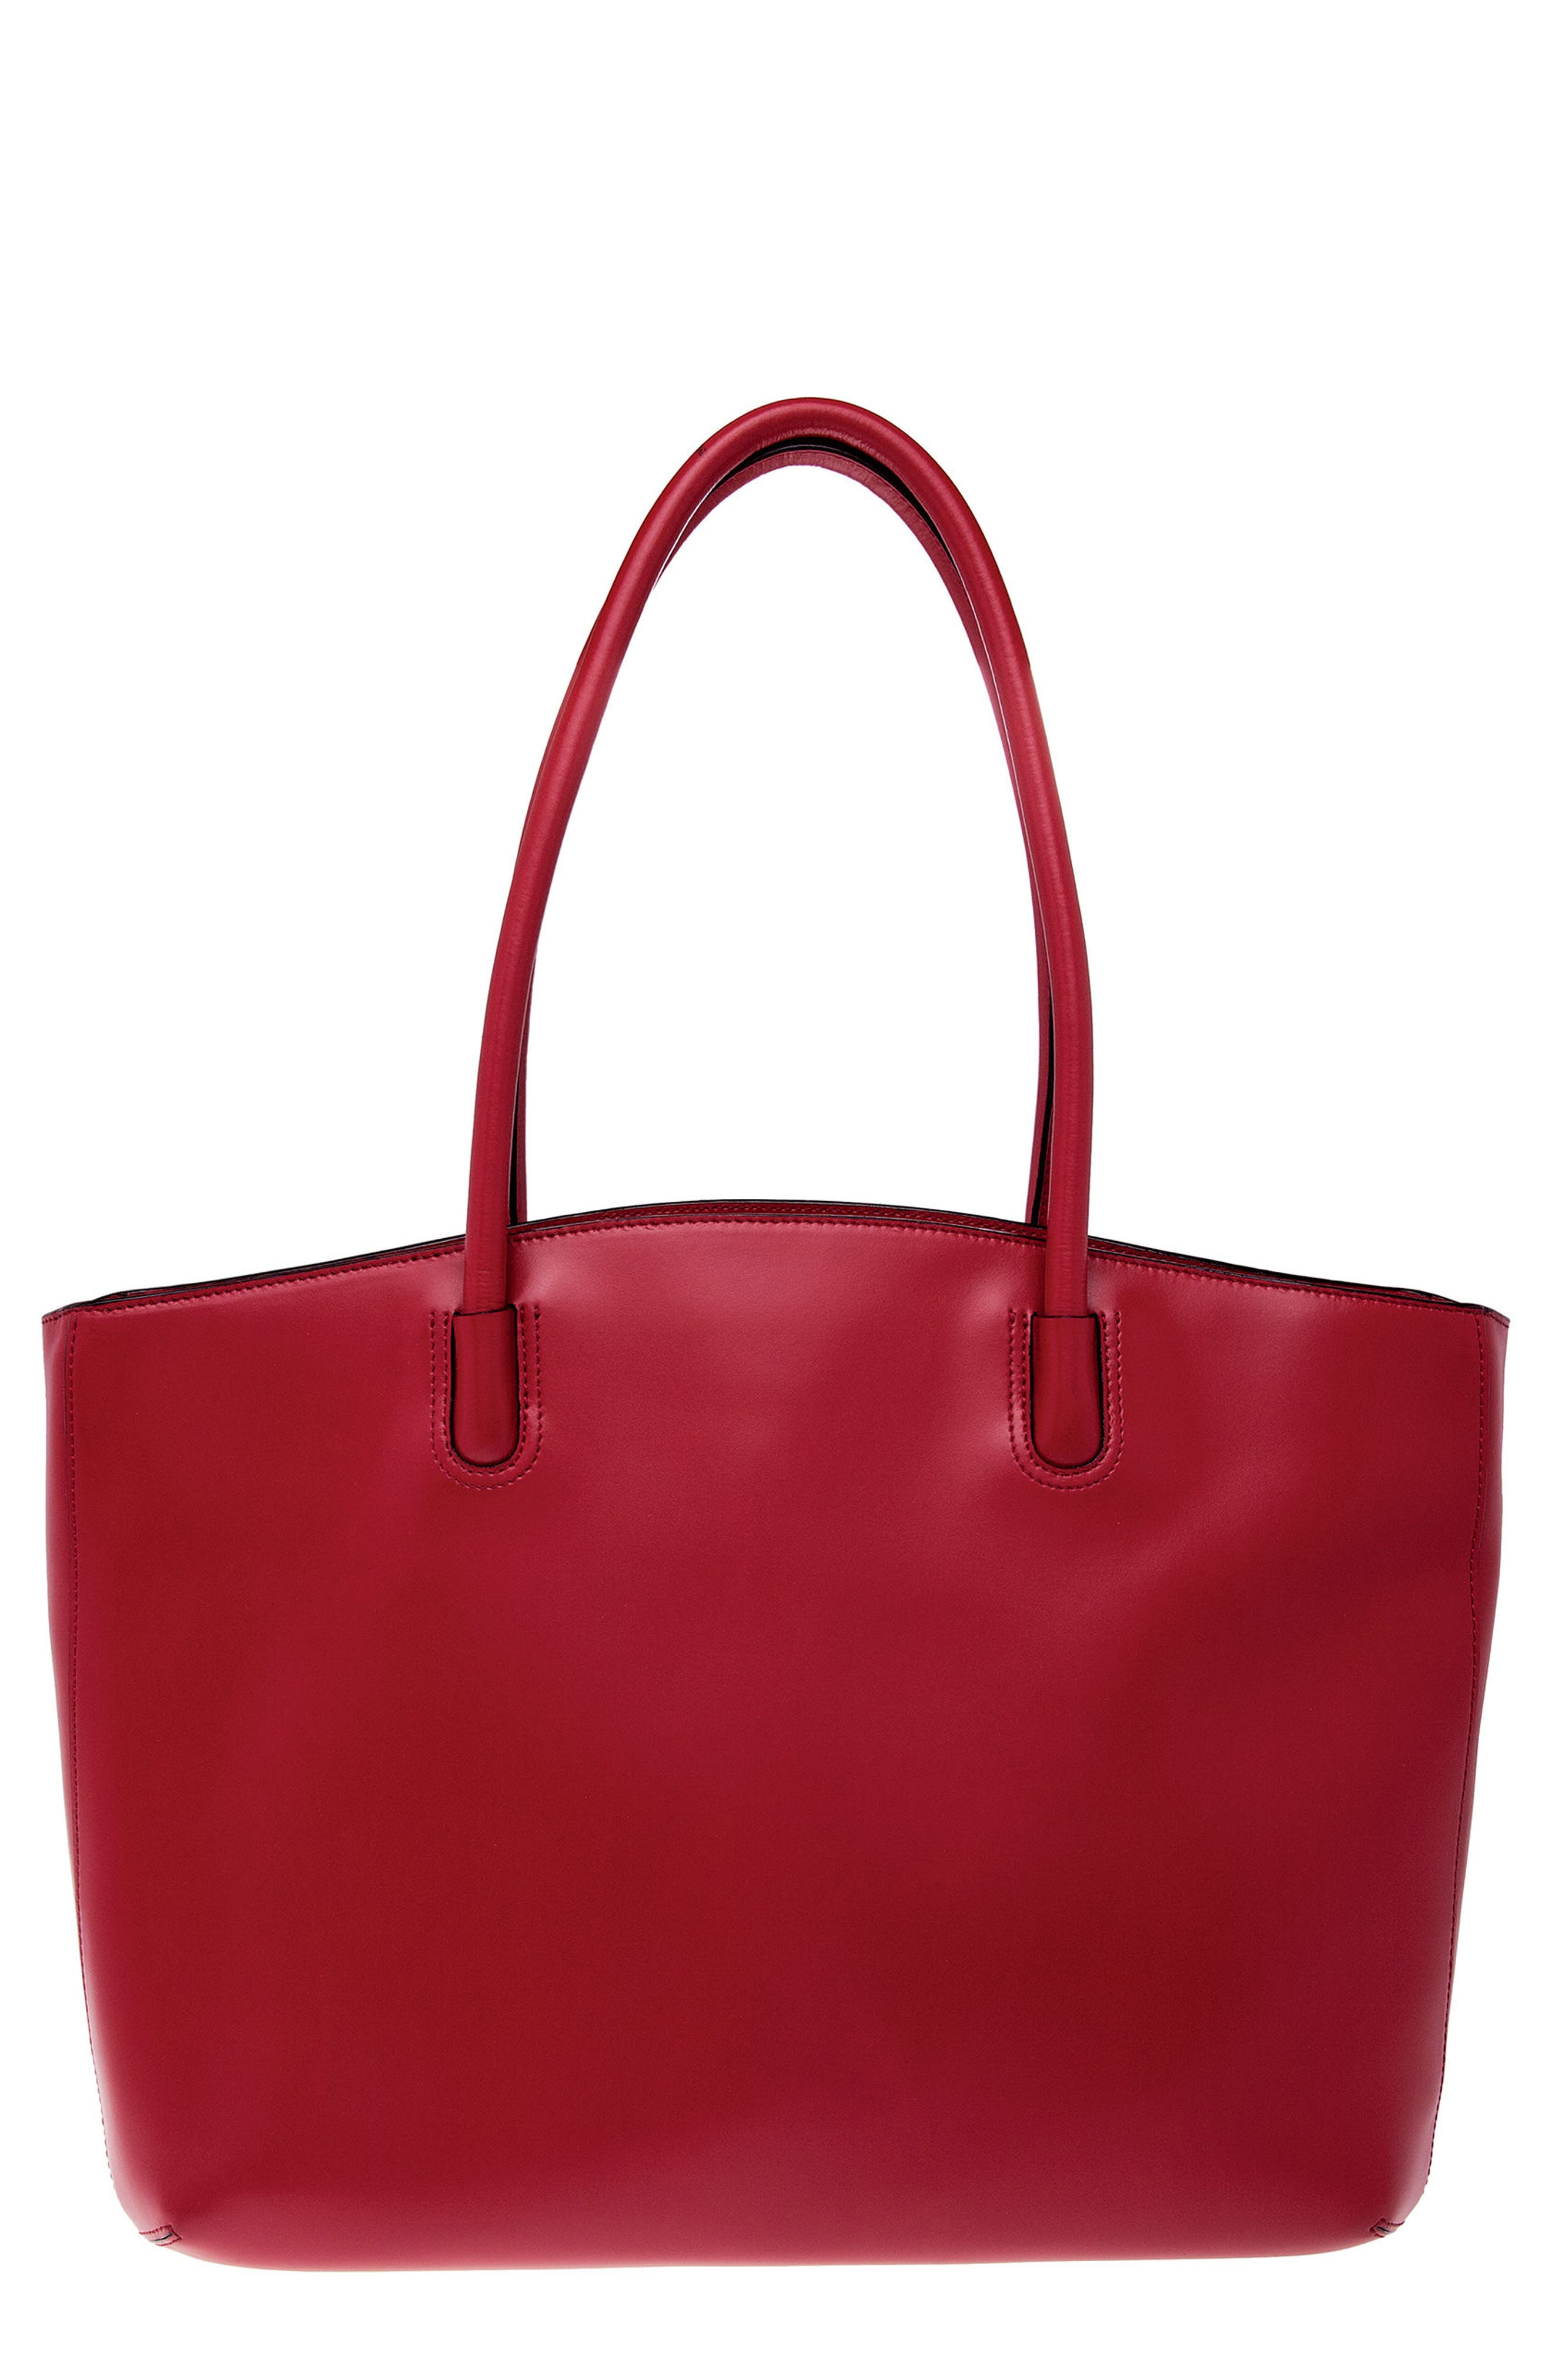 Audrey Under Lock & Key - Milano RFID Leather Tote,                         Main,                         color, Red